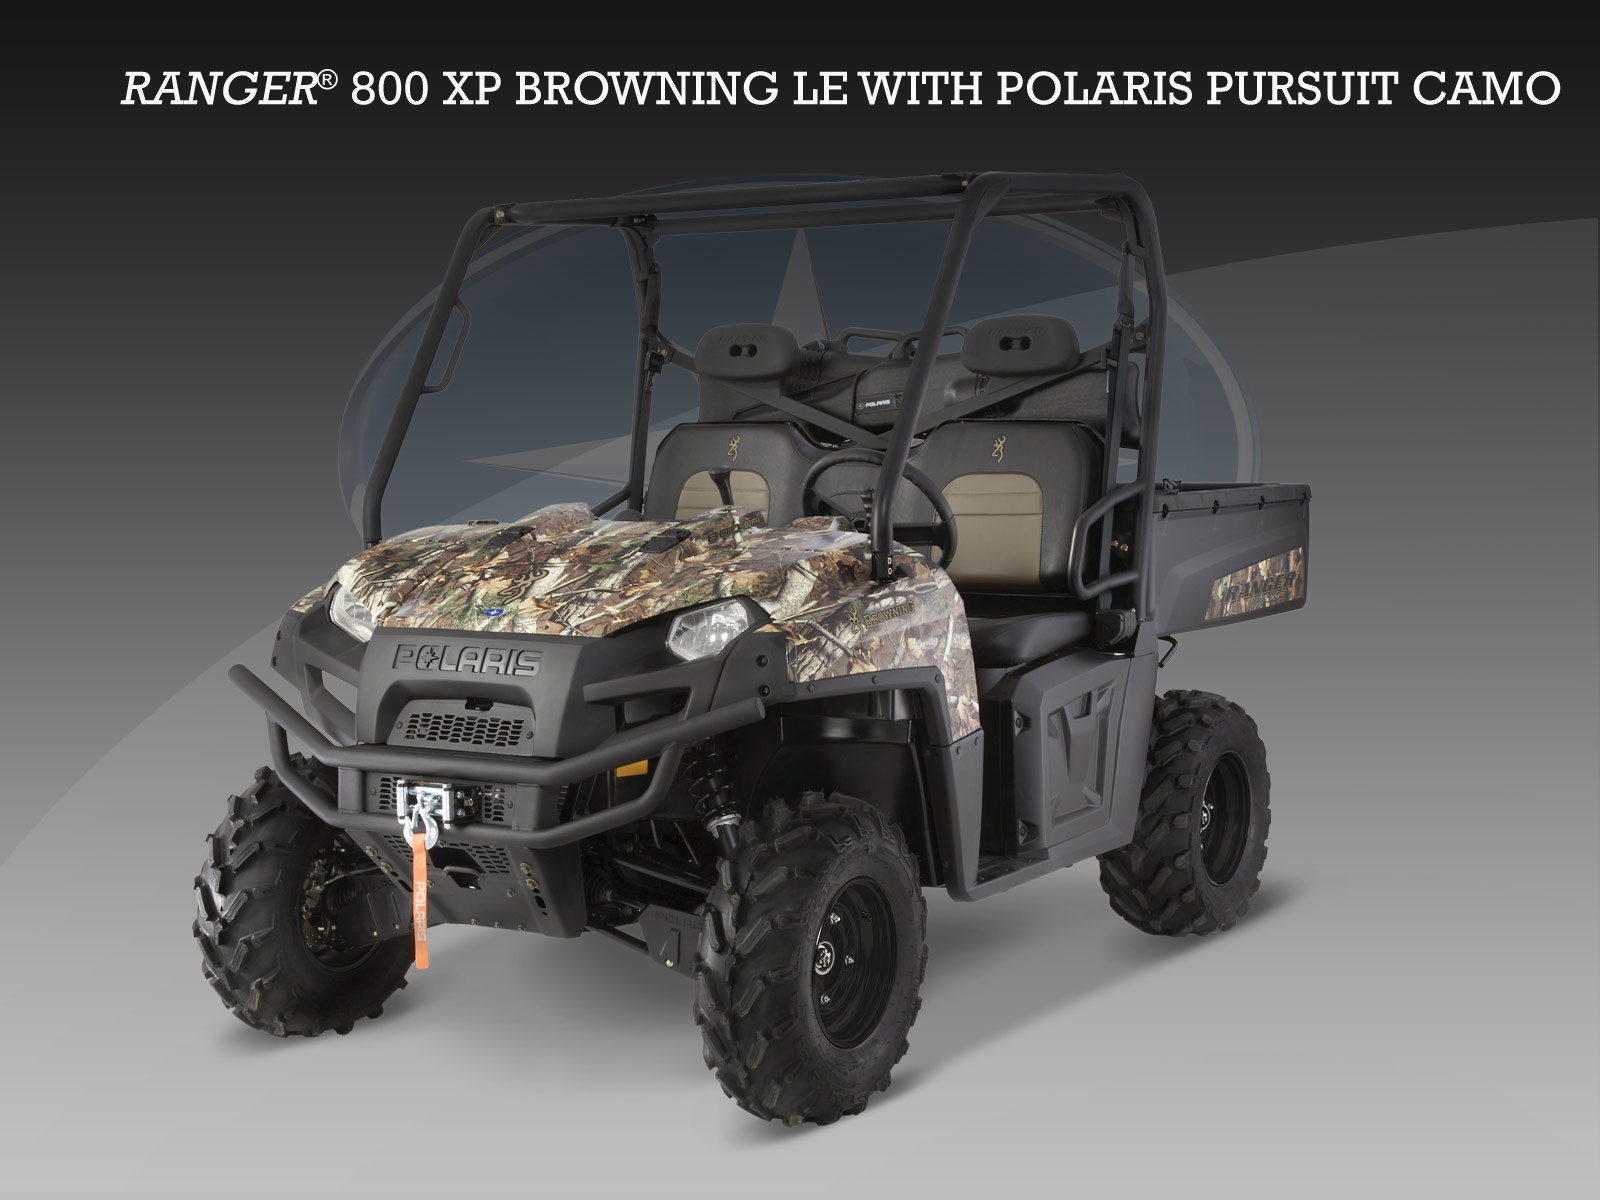 2014 Polaris Ranger Browning Edition For Sale